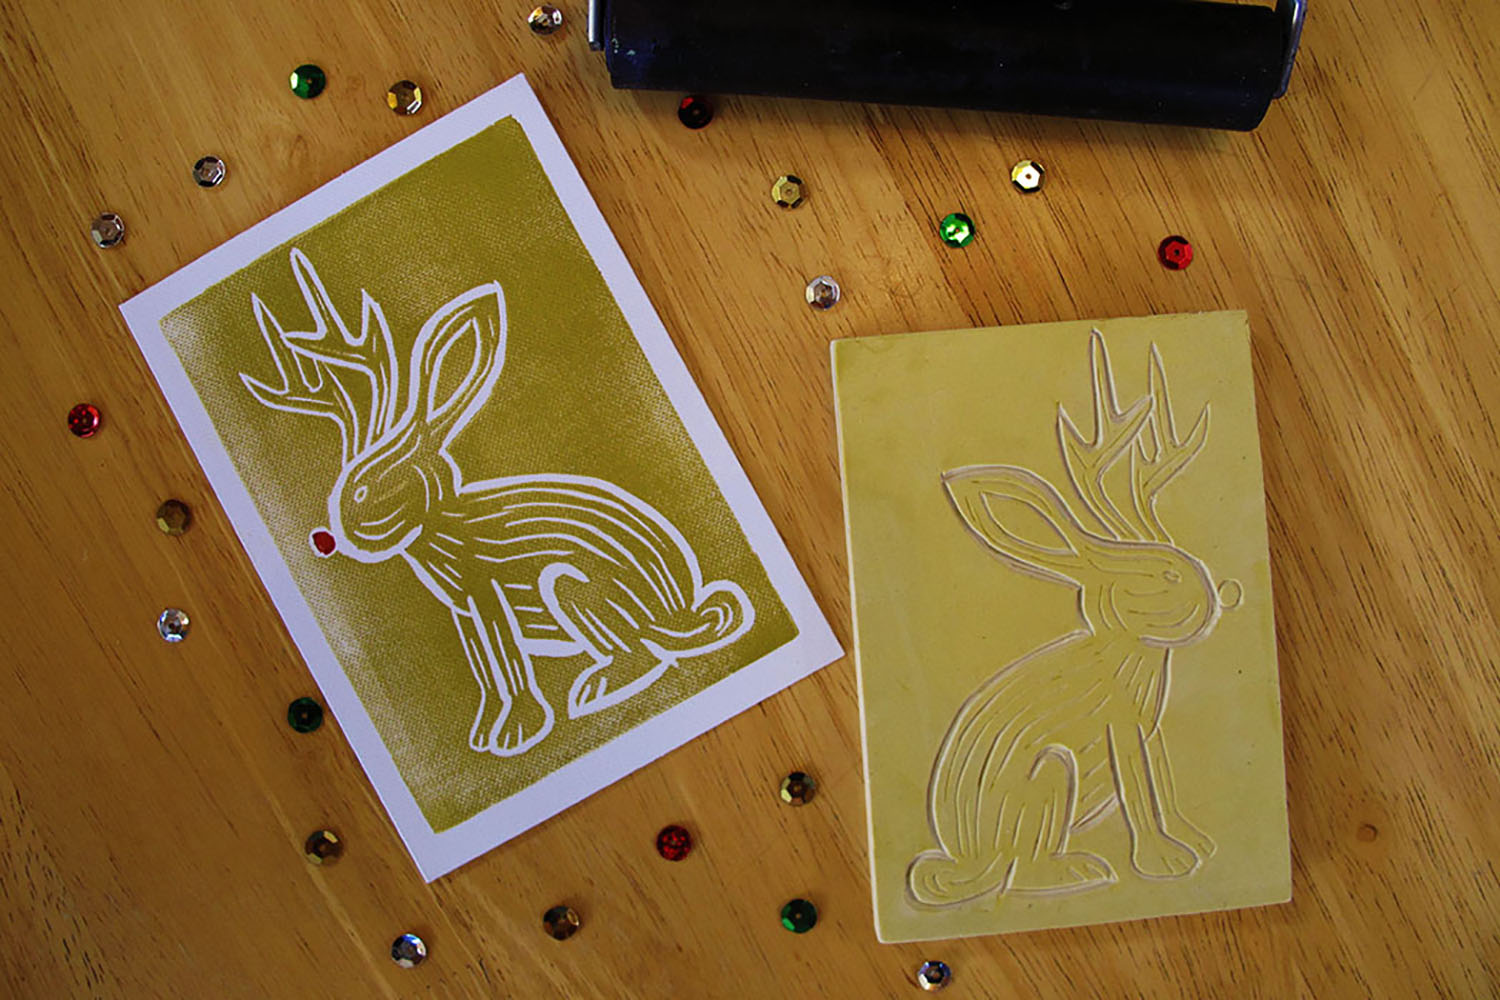 2_Holiday Jackalope Card with Tools.jpg